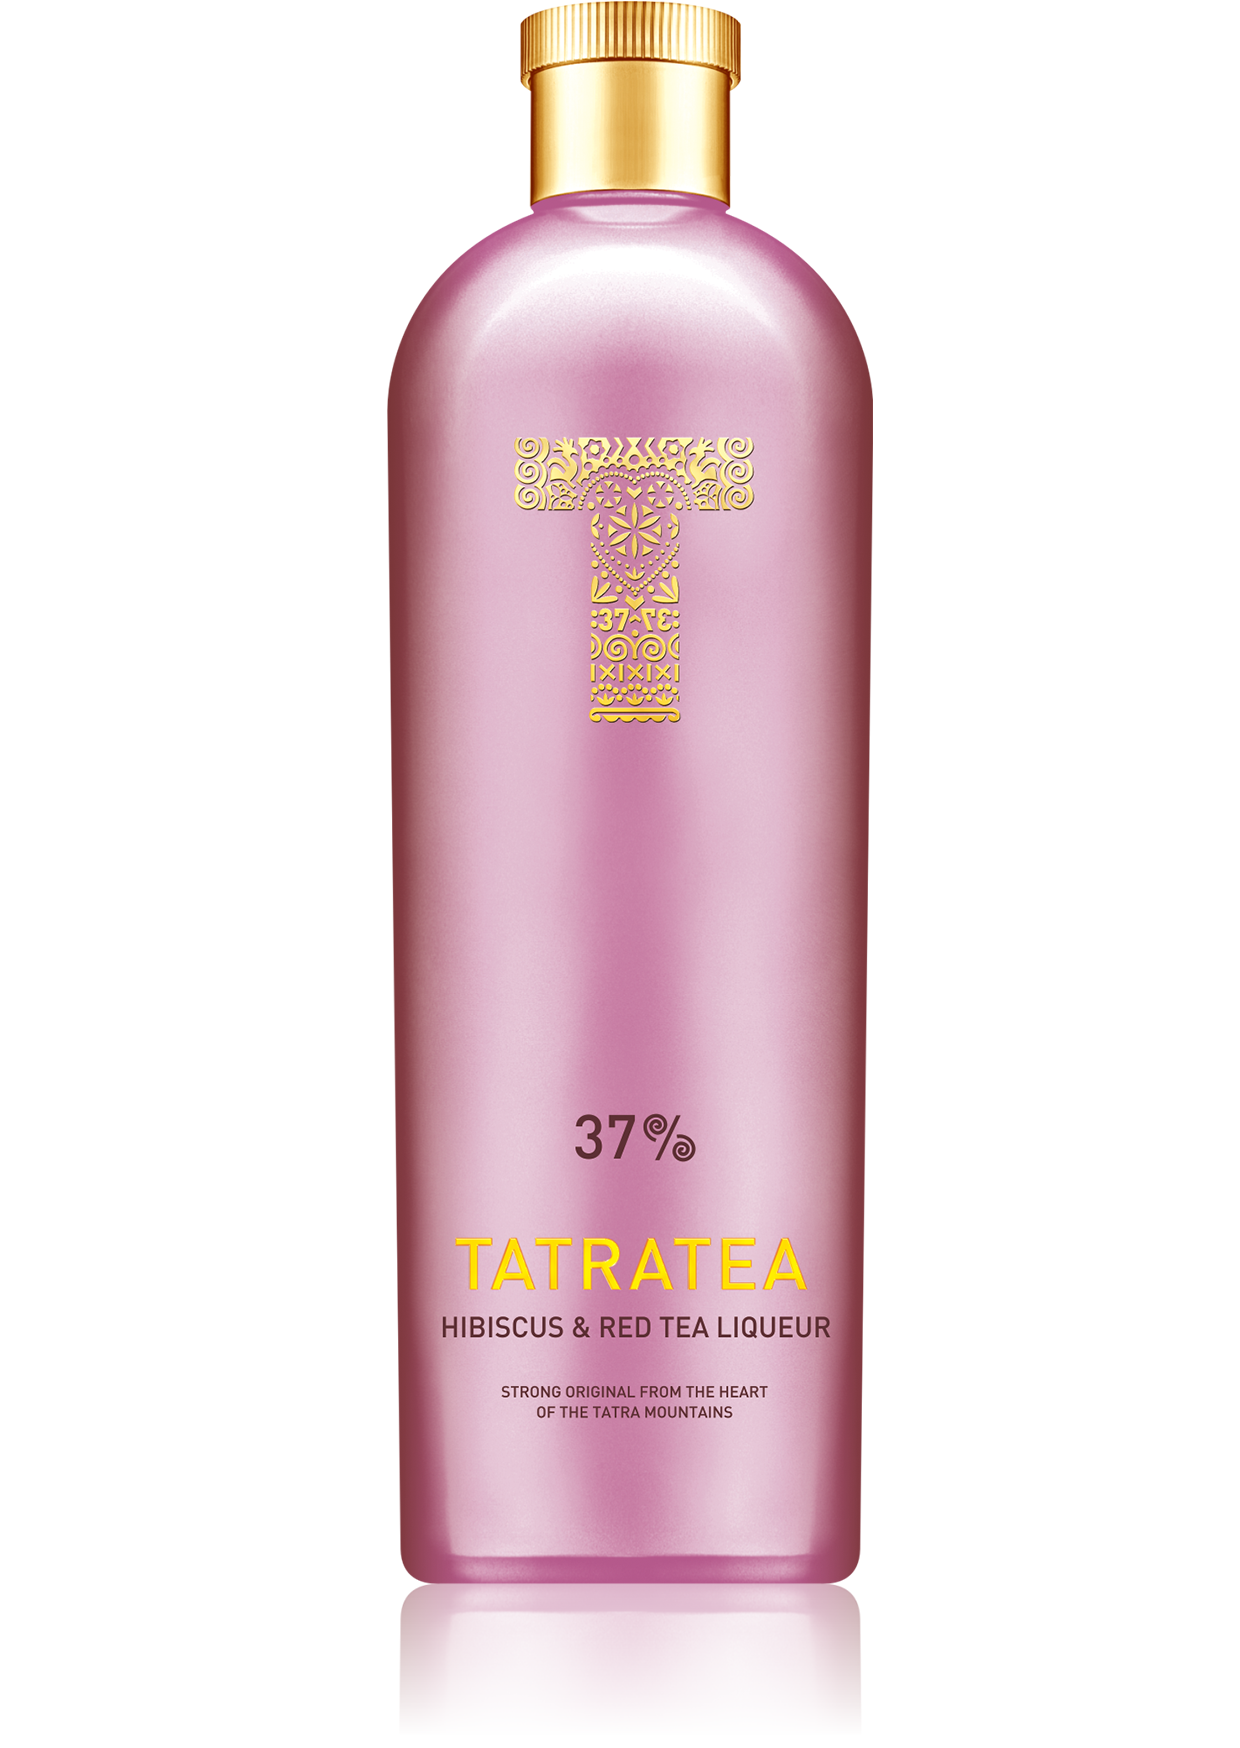 TATRATEA 37 % HIBISCUS & RED TEA